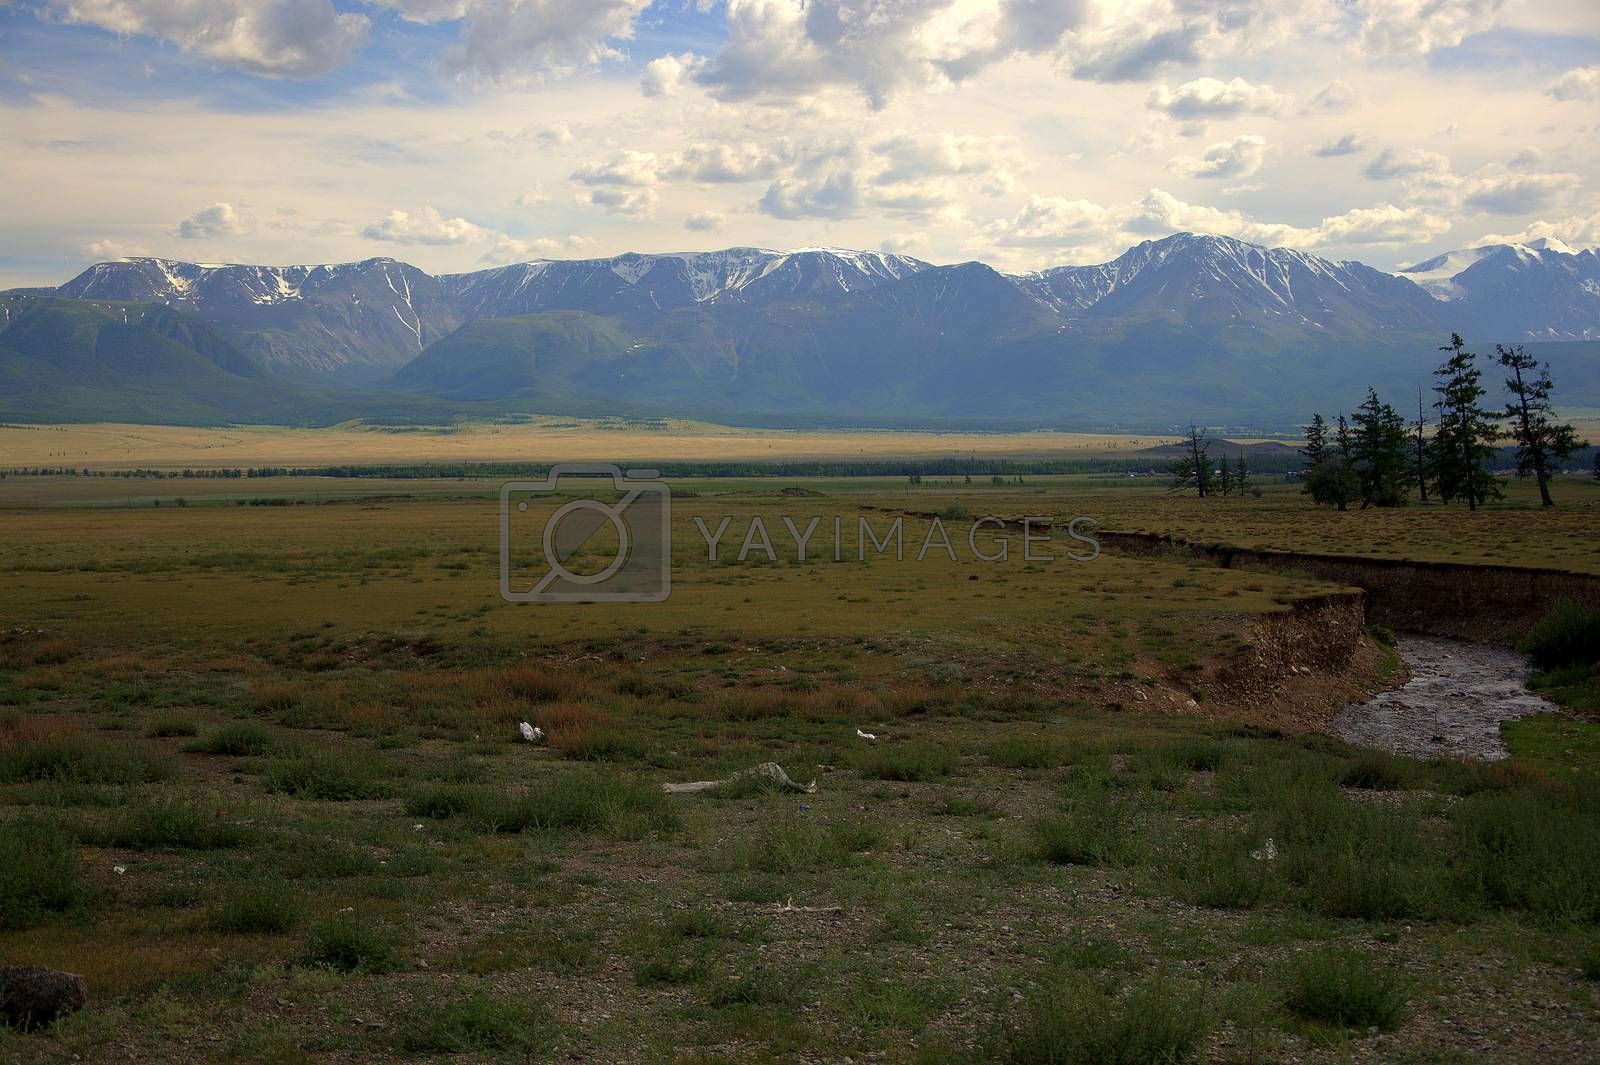 A small river flowing in a canyon across the steppe to meet the snow-capped mountain peaks. Altai, Siberia, Russia.